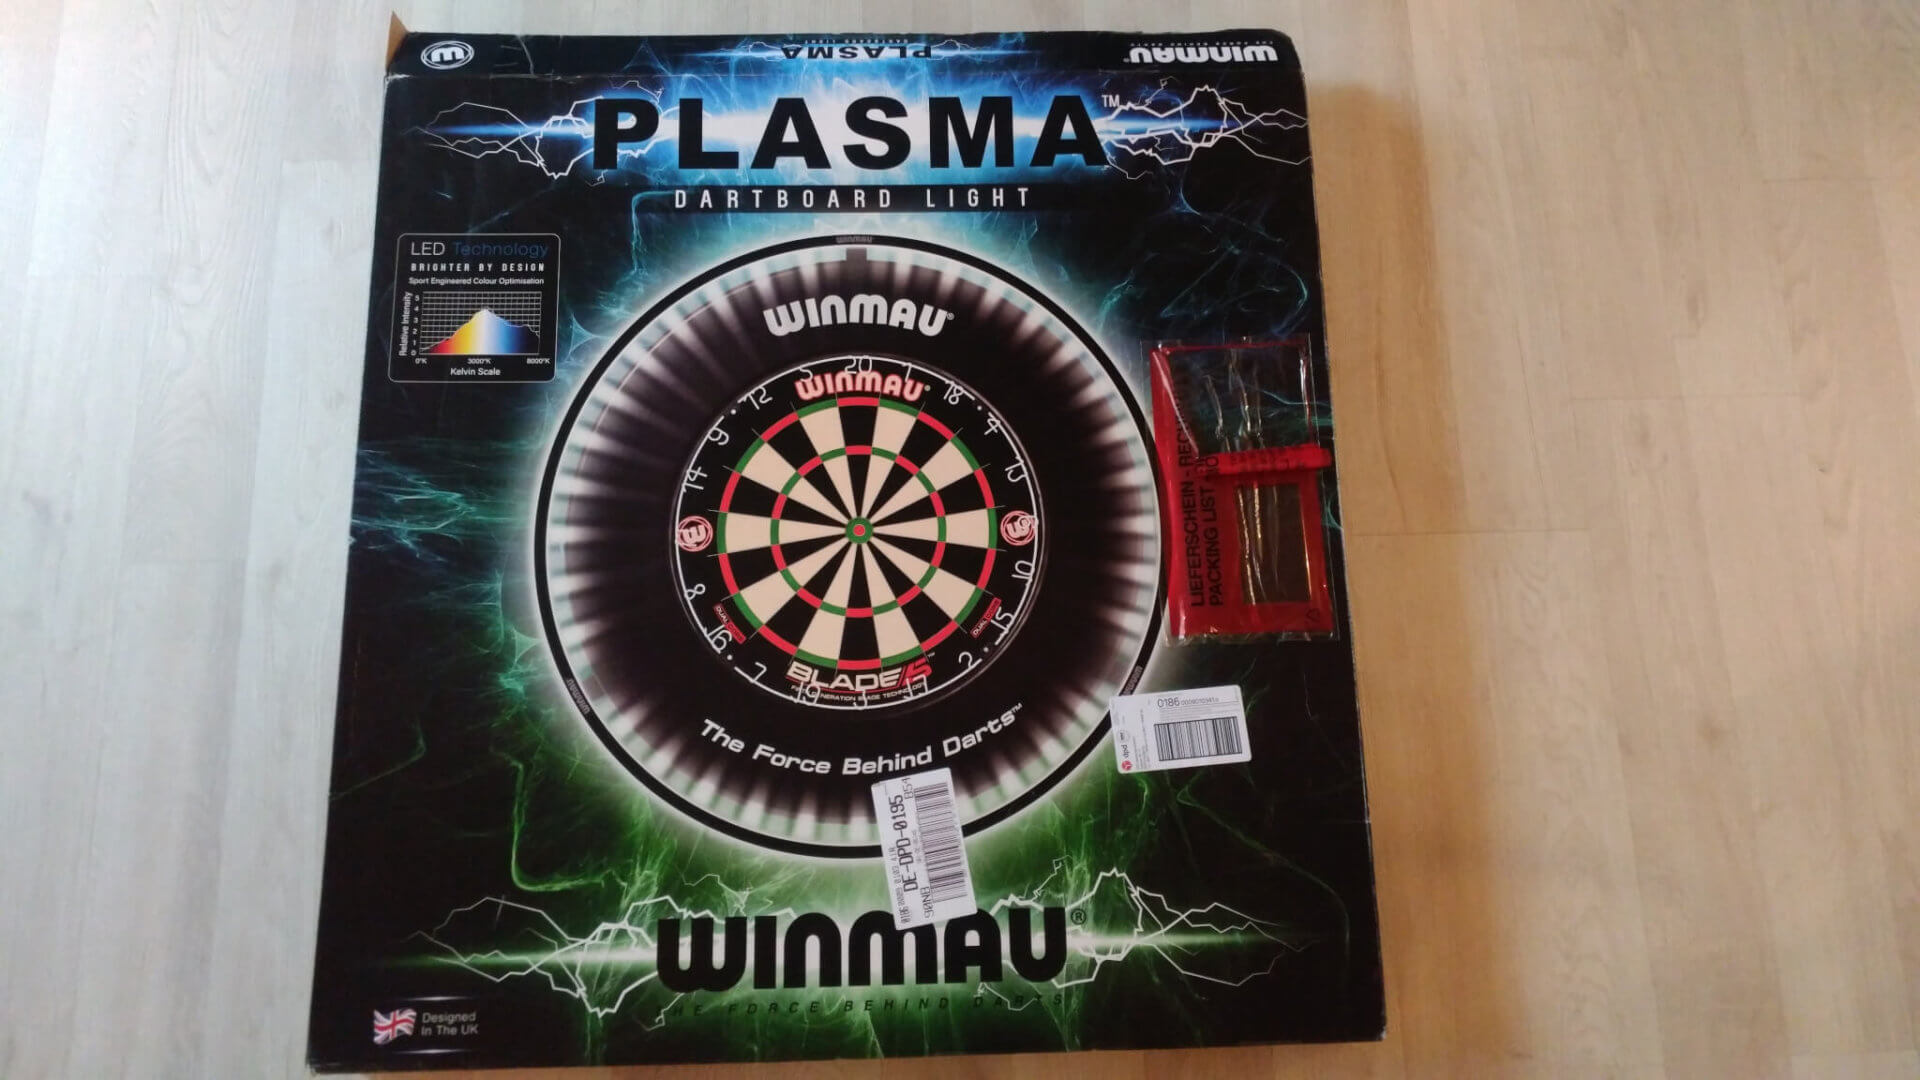 Winmau - Plasma Dartboard light 4300